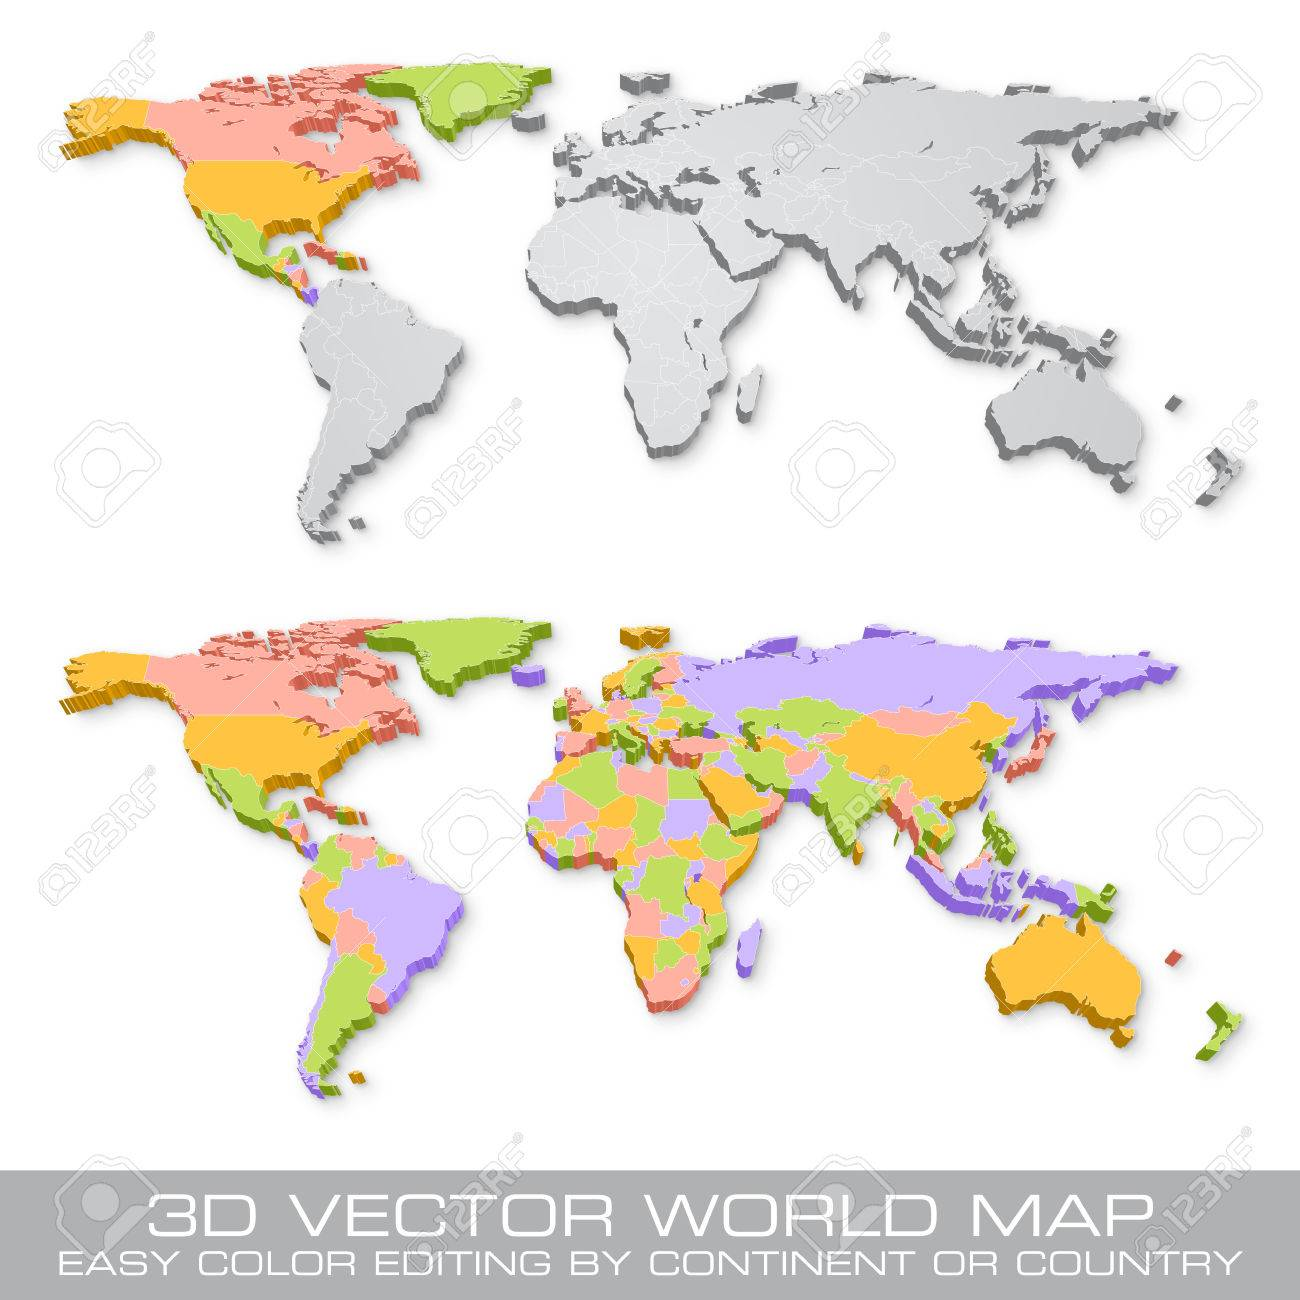 High detail vector political world map illustration with 3d shadow high detail vector political world map illustration with 3d shadow effect cleverly organized with layers gumiabroncs Images